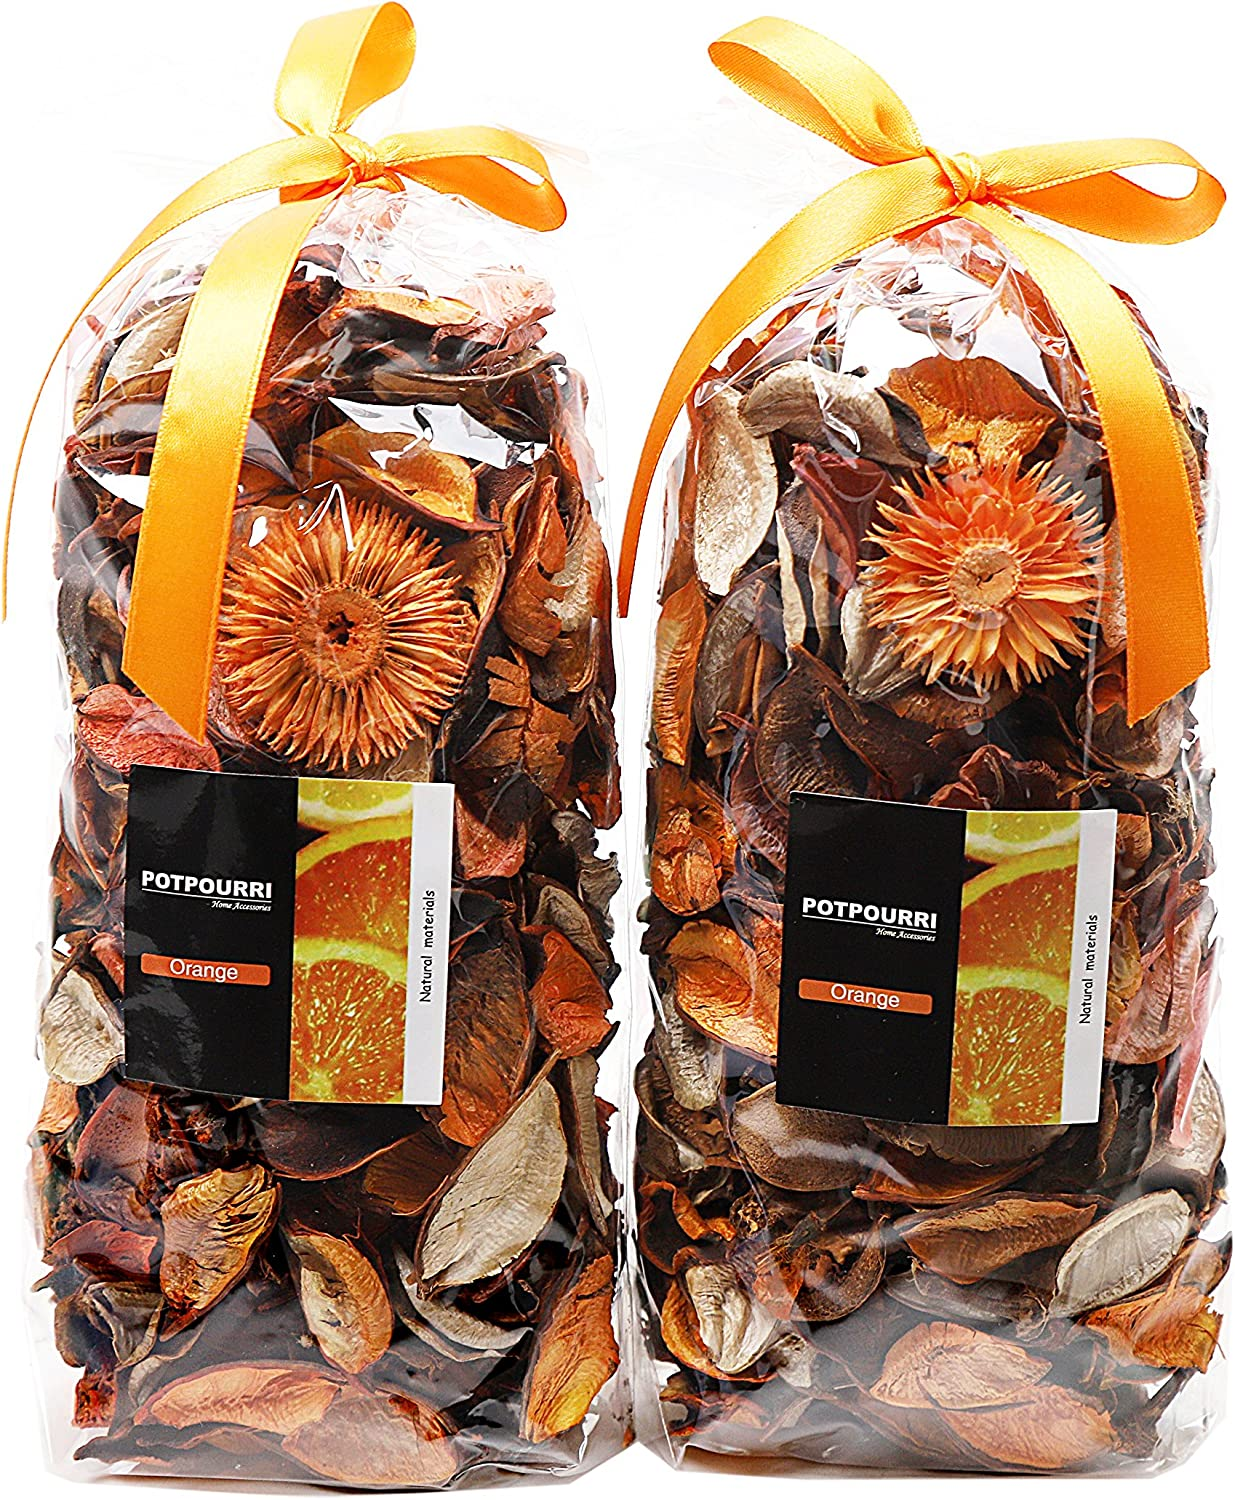 Qingbei Rina Gifts Orange Fresh Potpourri Bag Home Fragrance Perfume Sachet of Petal,Bowl and Vase Decorative Filler,2 Bags, 240g, Suitable for Filling a 83 Fluid-Oz Bowl (Orange)